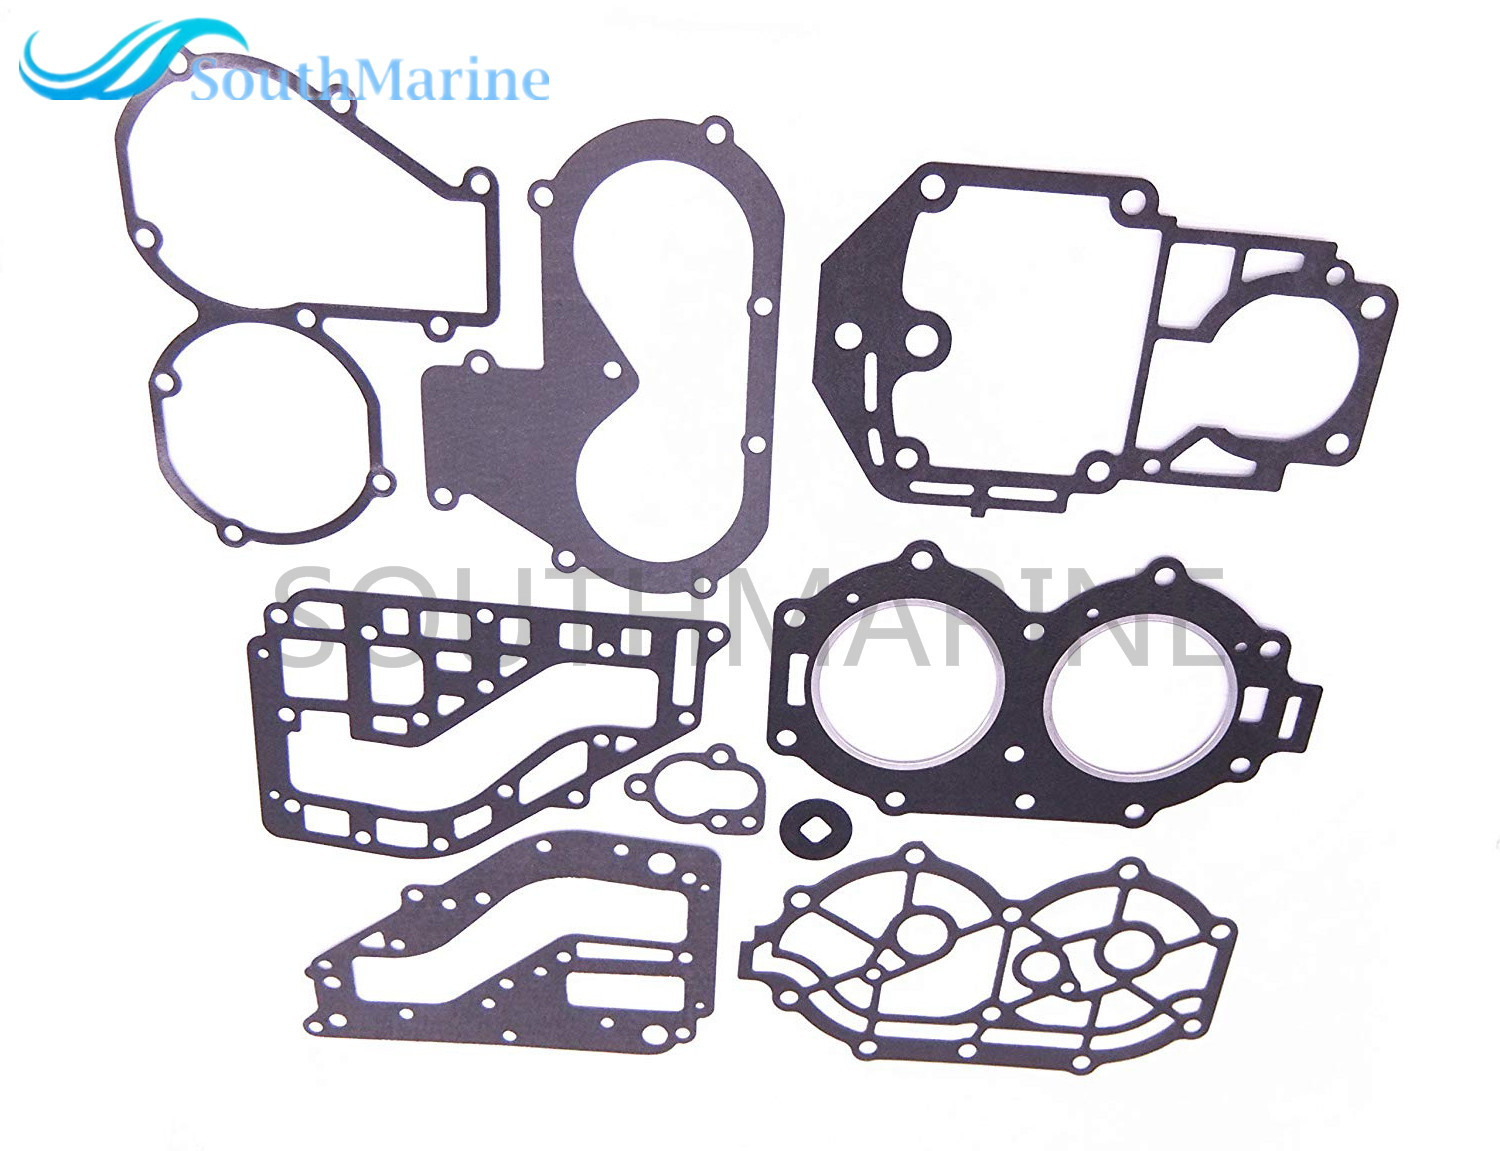 Boat Motor Complete Power Head Seal Gasket Kit for Yamaha 25HP 30HP Outboard Engine